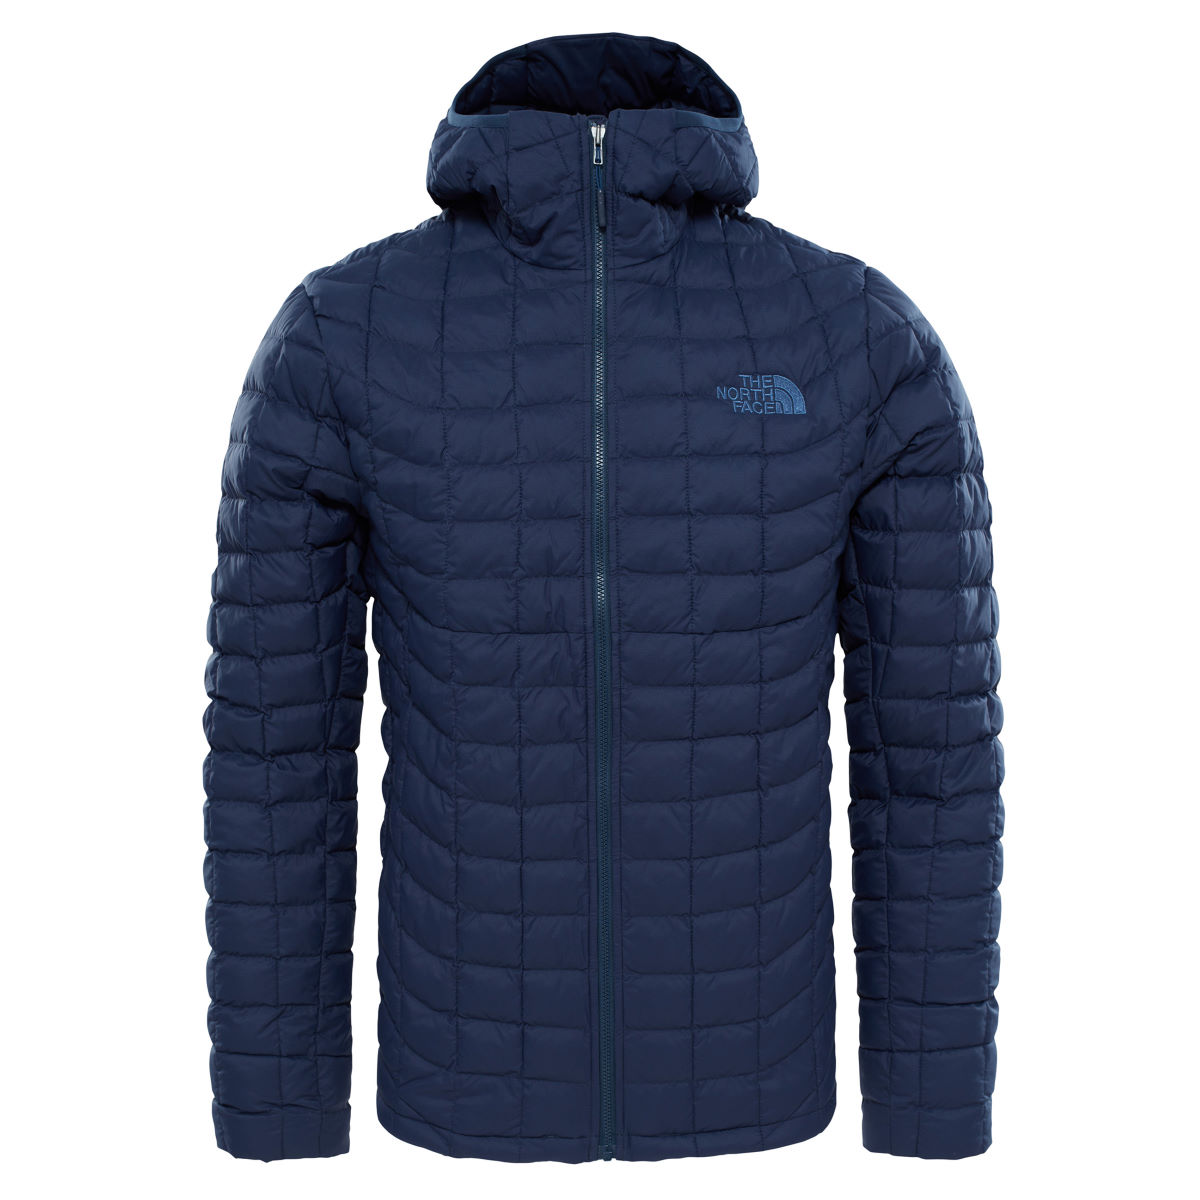 Veste The North Face Thermoball (capuche) - S Urban Navy